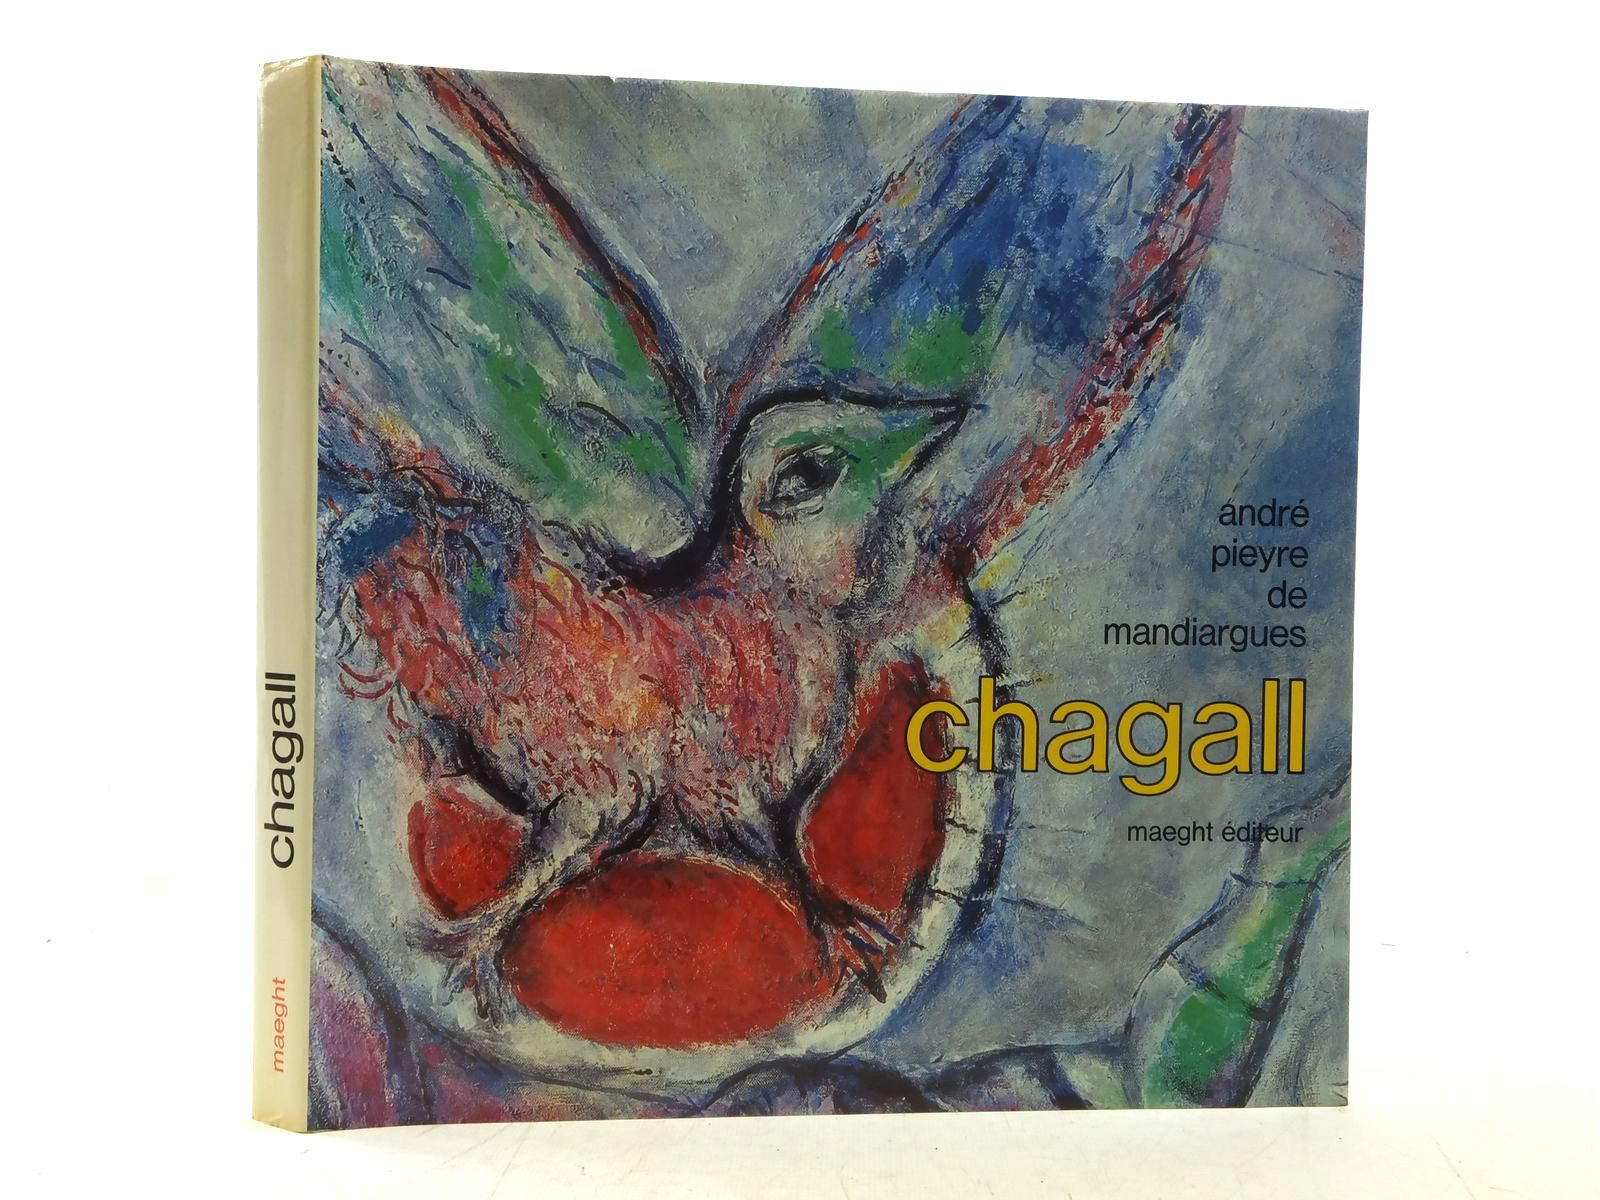 Photo of CHAGALL written by De Mandiargues, Andre Pieyre illustrated by Chagall, Marc published by Maeght Editeur (STOCK CODE: 2117335)  for sale by Stella & Rose's Books